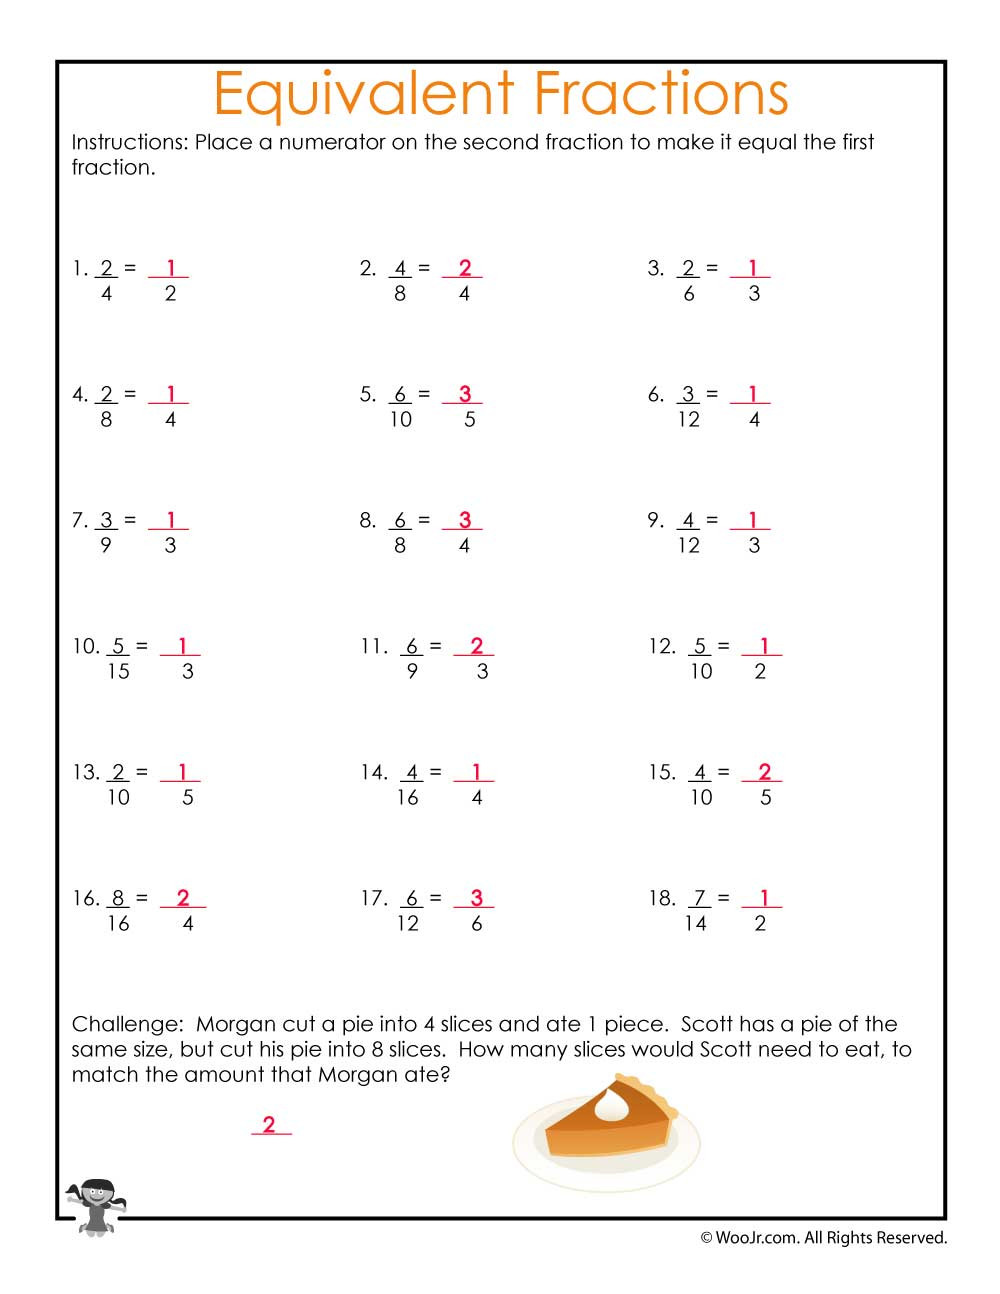 Fractions Worksheets Grade 4 Pdf Equivalent Fractions Equations Worksheet Answers